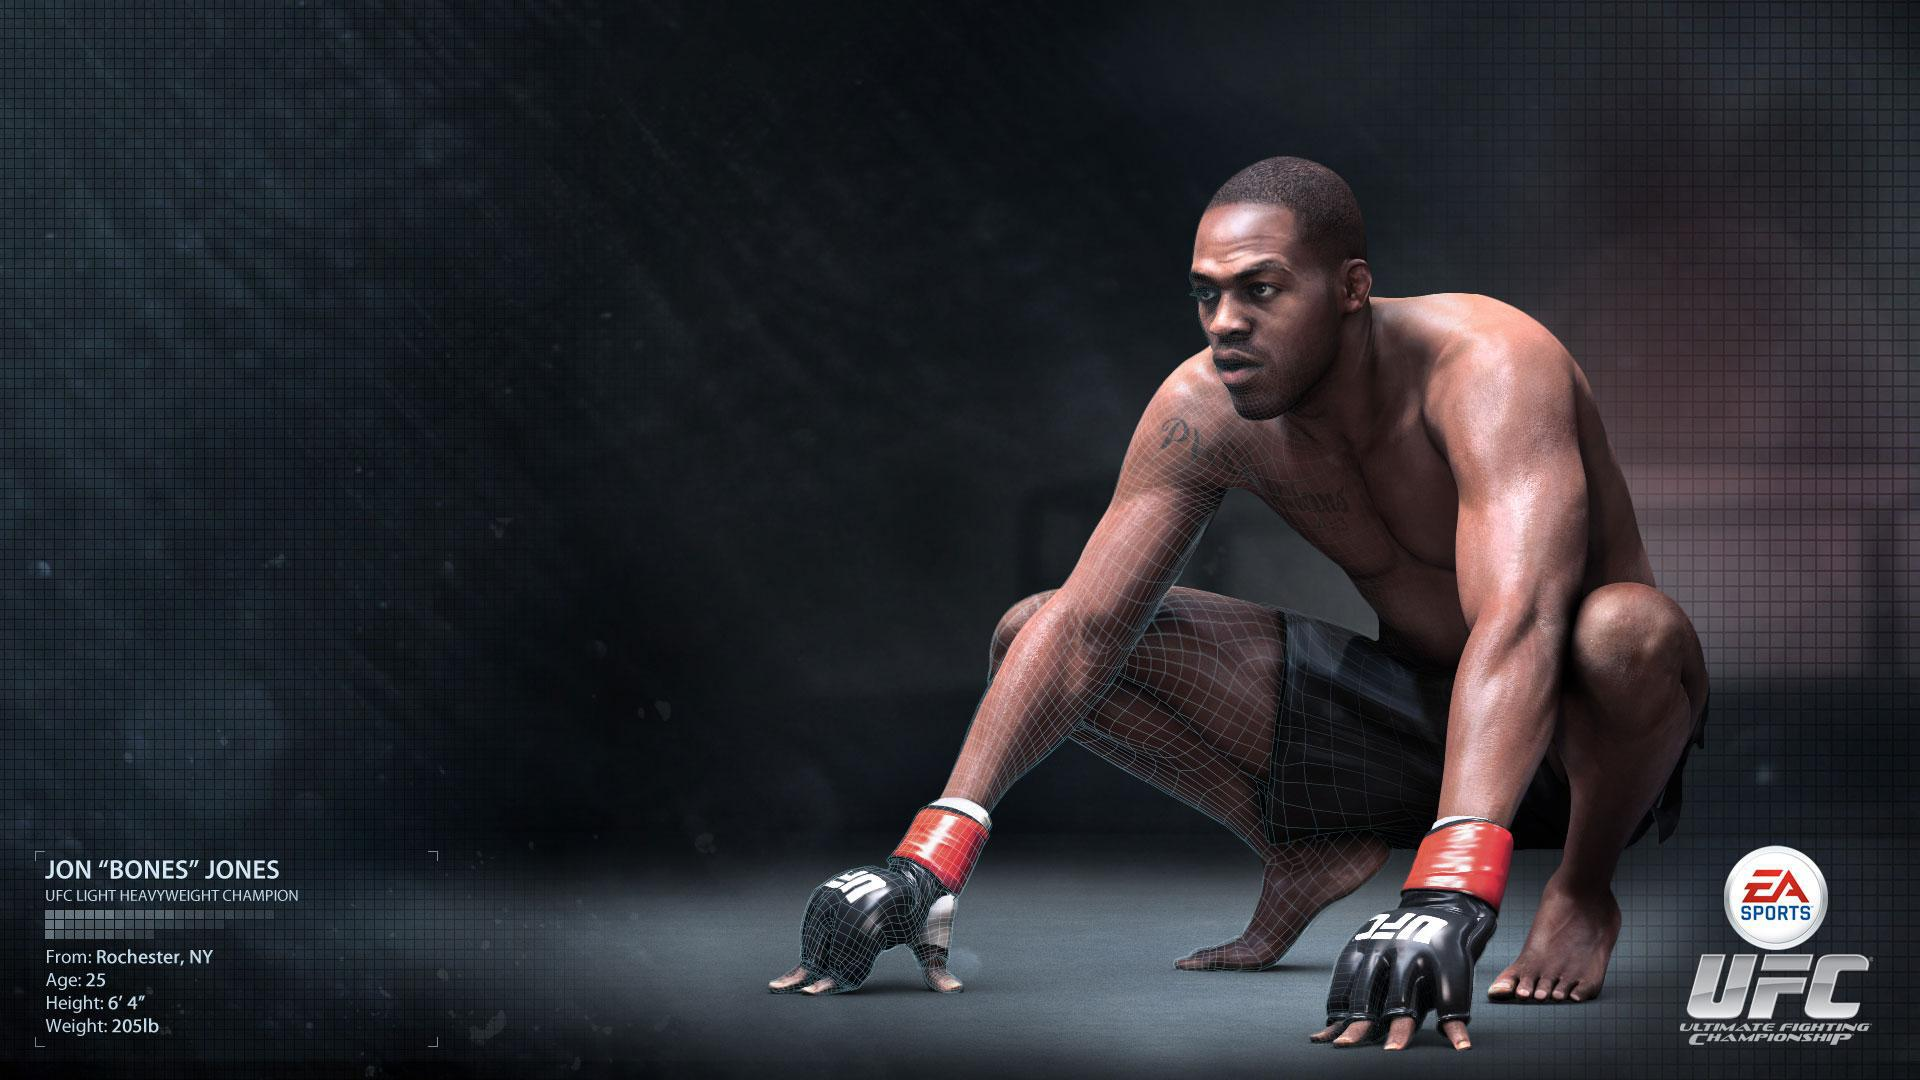 UFC Fighter Jon Jones wallpapers and images   wallpapers pictures 1920x1080